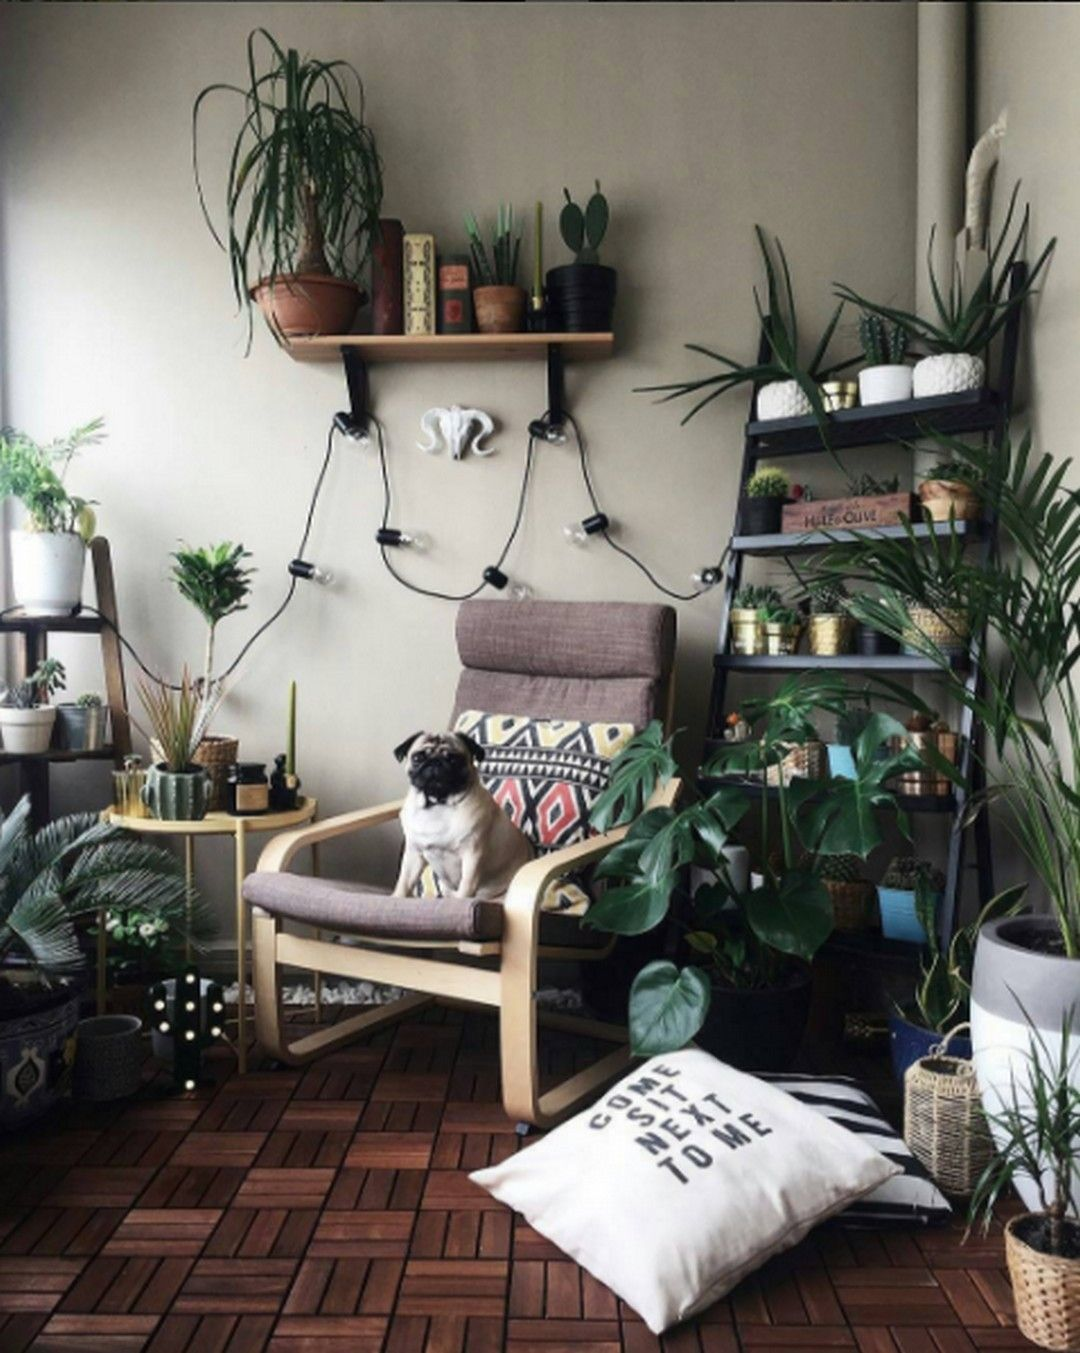 29 Best Diy Witchy Apartment Ideas To Get A Differing Look ...